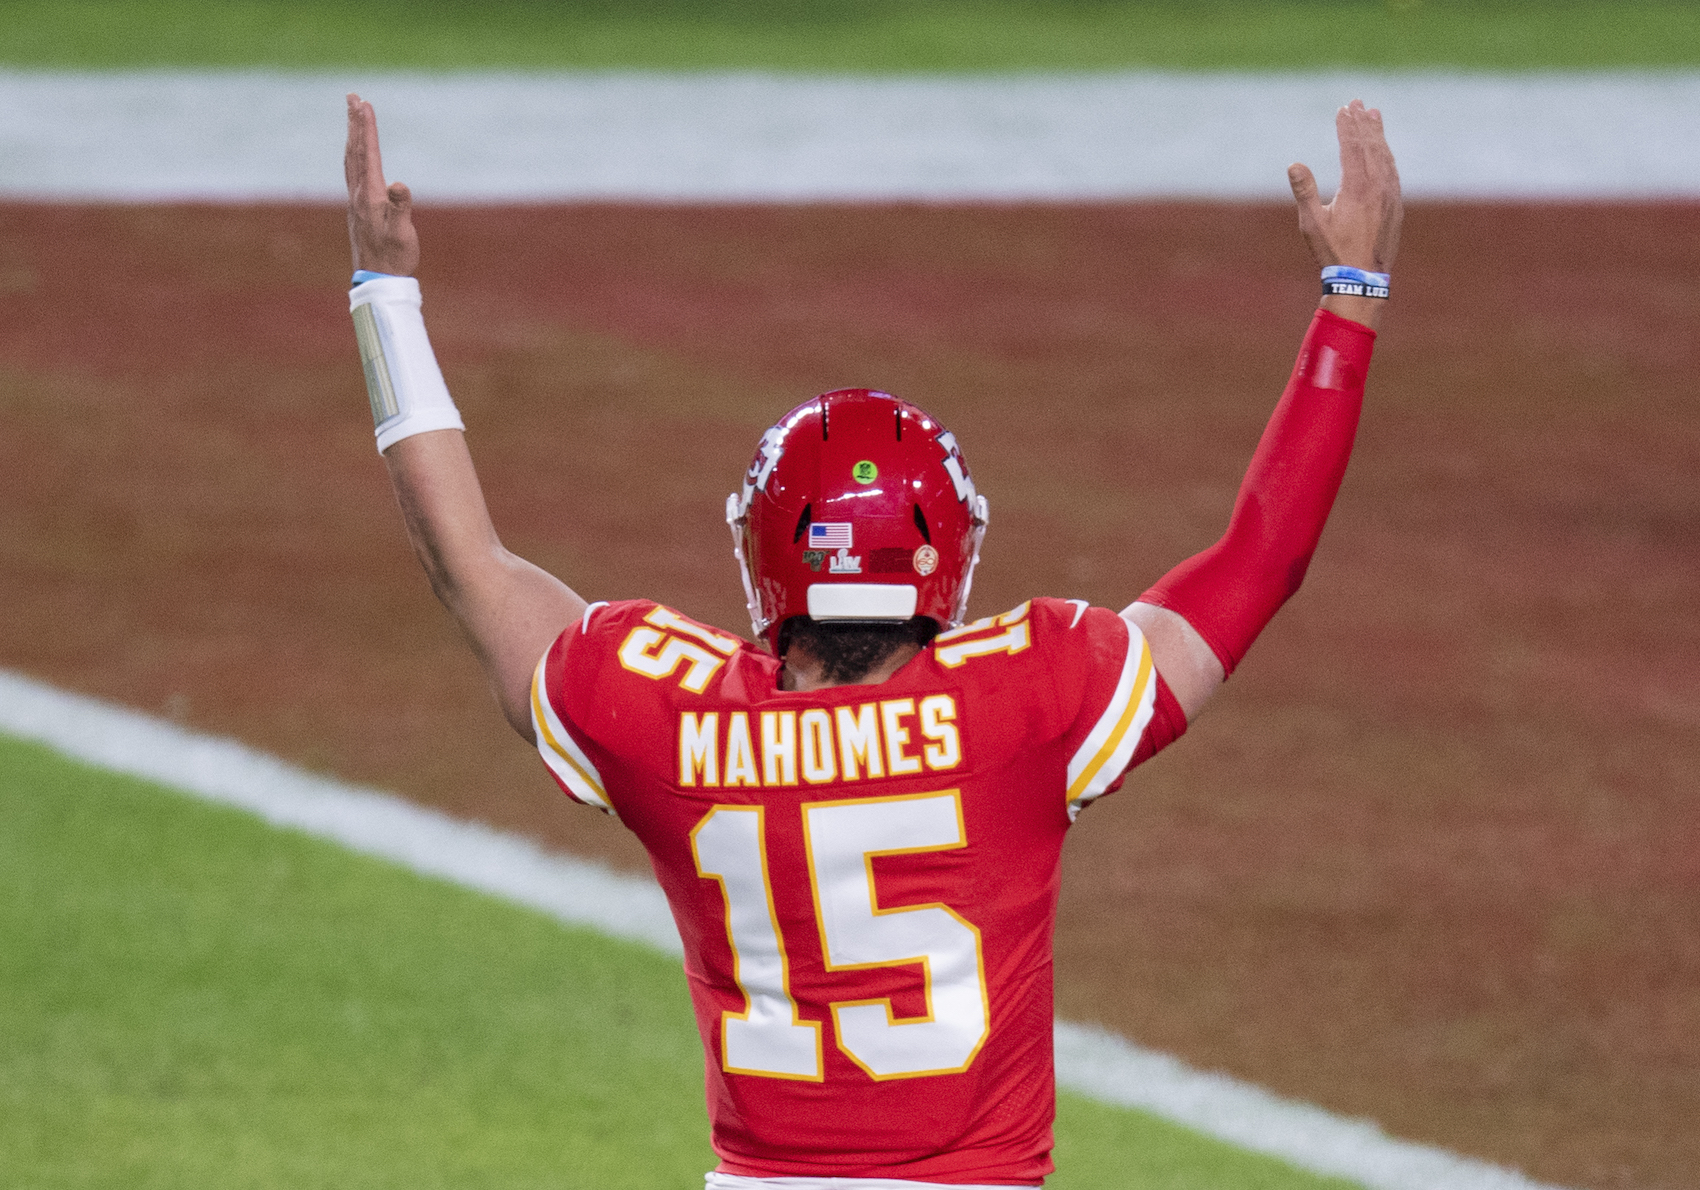 The Kansas City Chiefs locked up Patrick Mahomes for 10 more years, but the team will soon regret breaking the bank for their franchise QB.